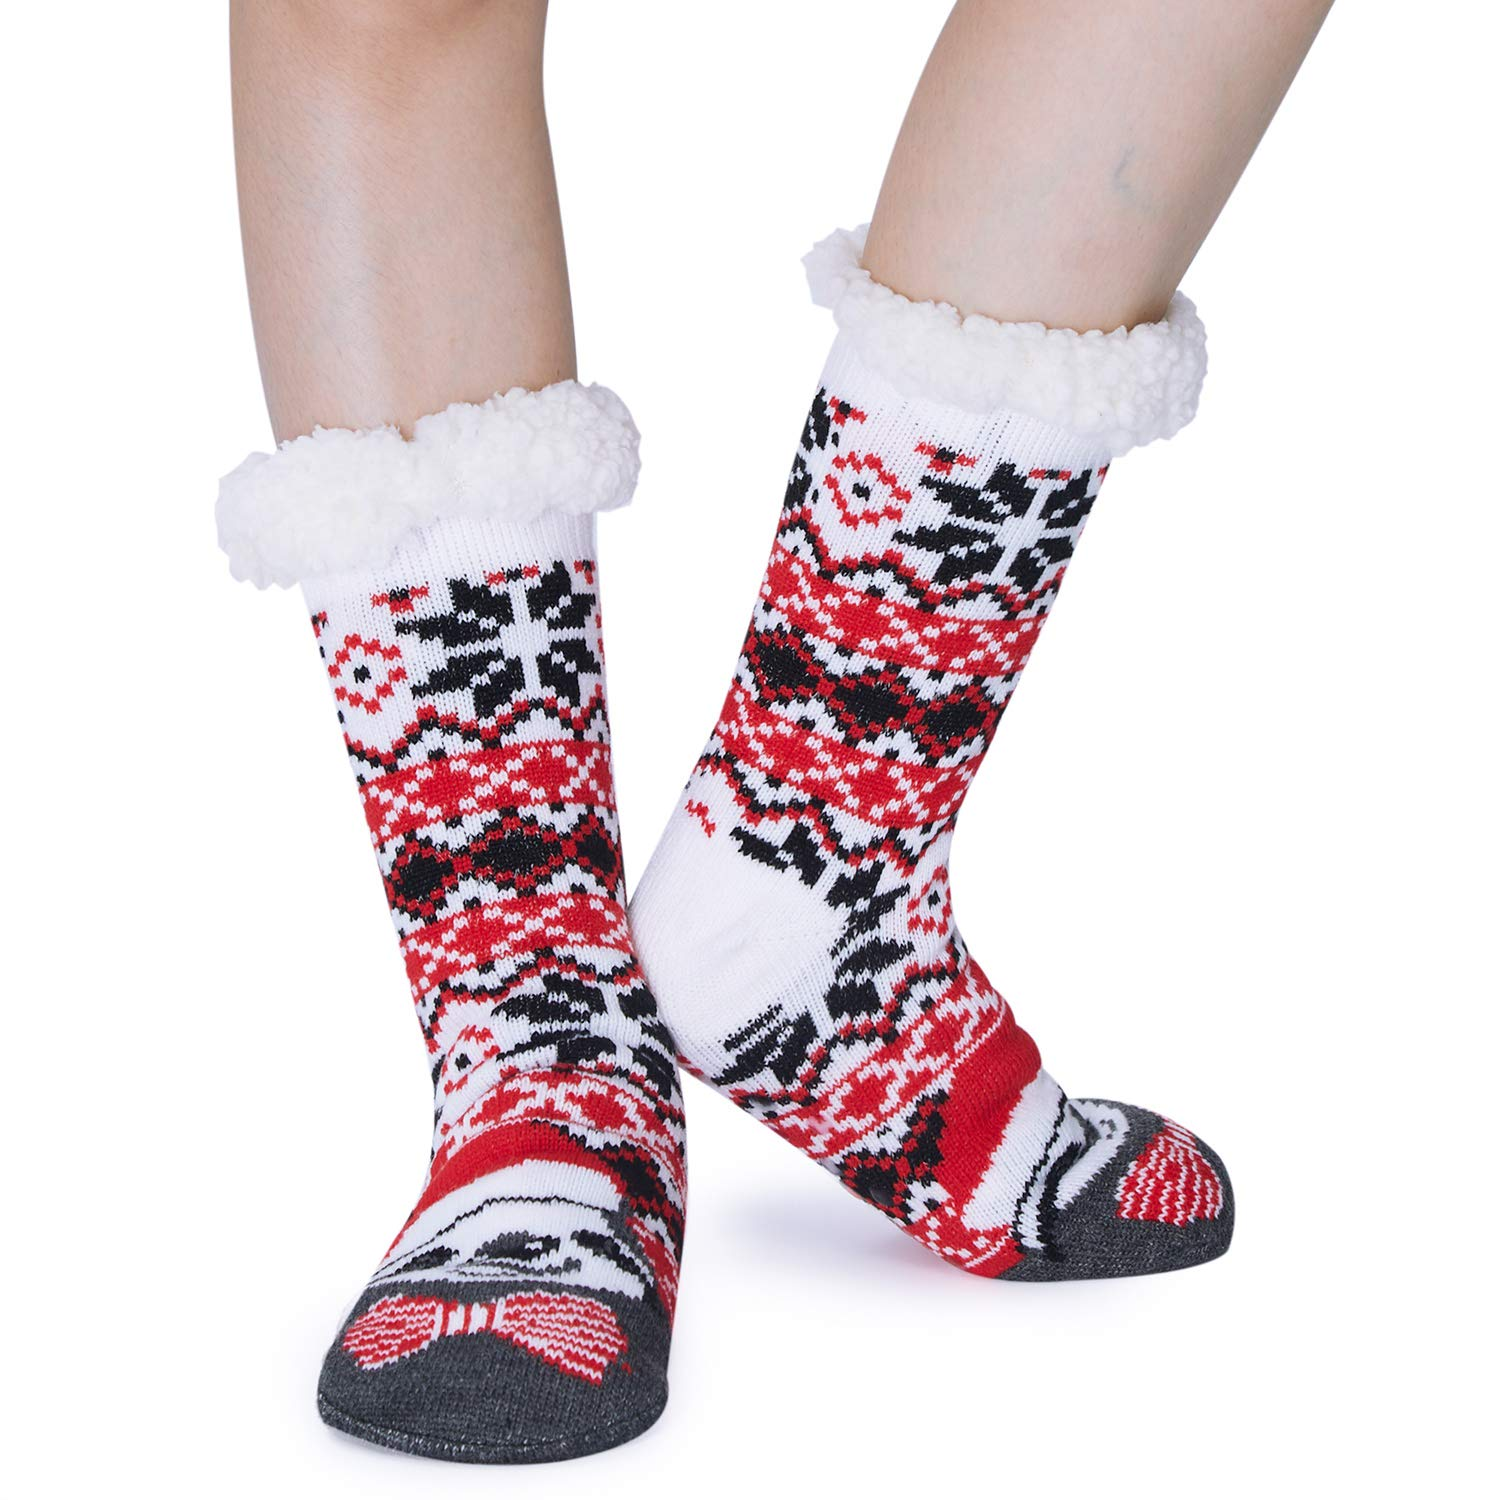 Spreadhoodie slipper socks